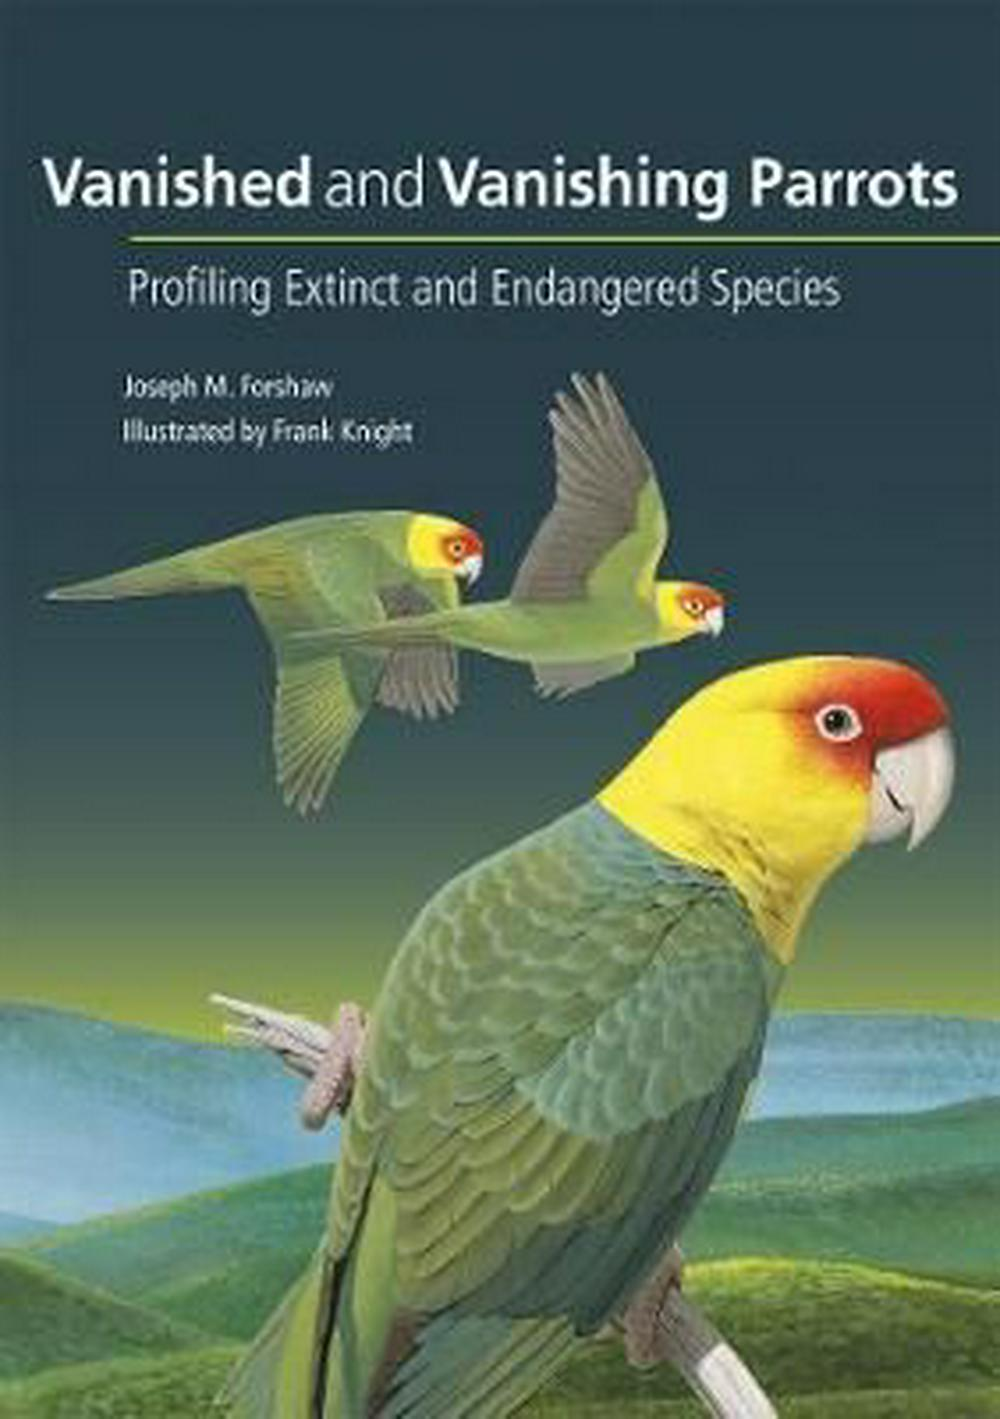 Vanished and Vanishing Parrots: Profiling Extinct and Endangered Species